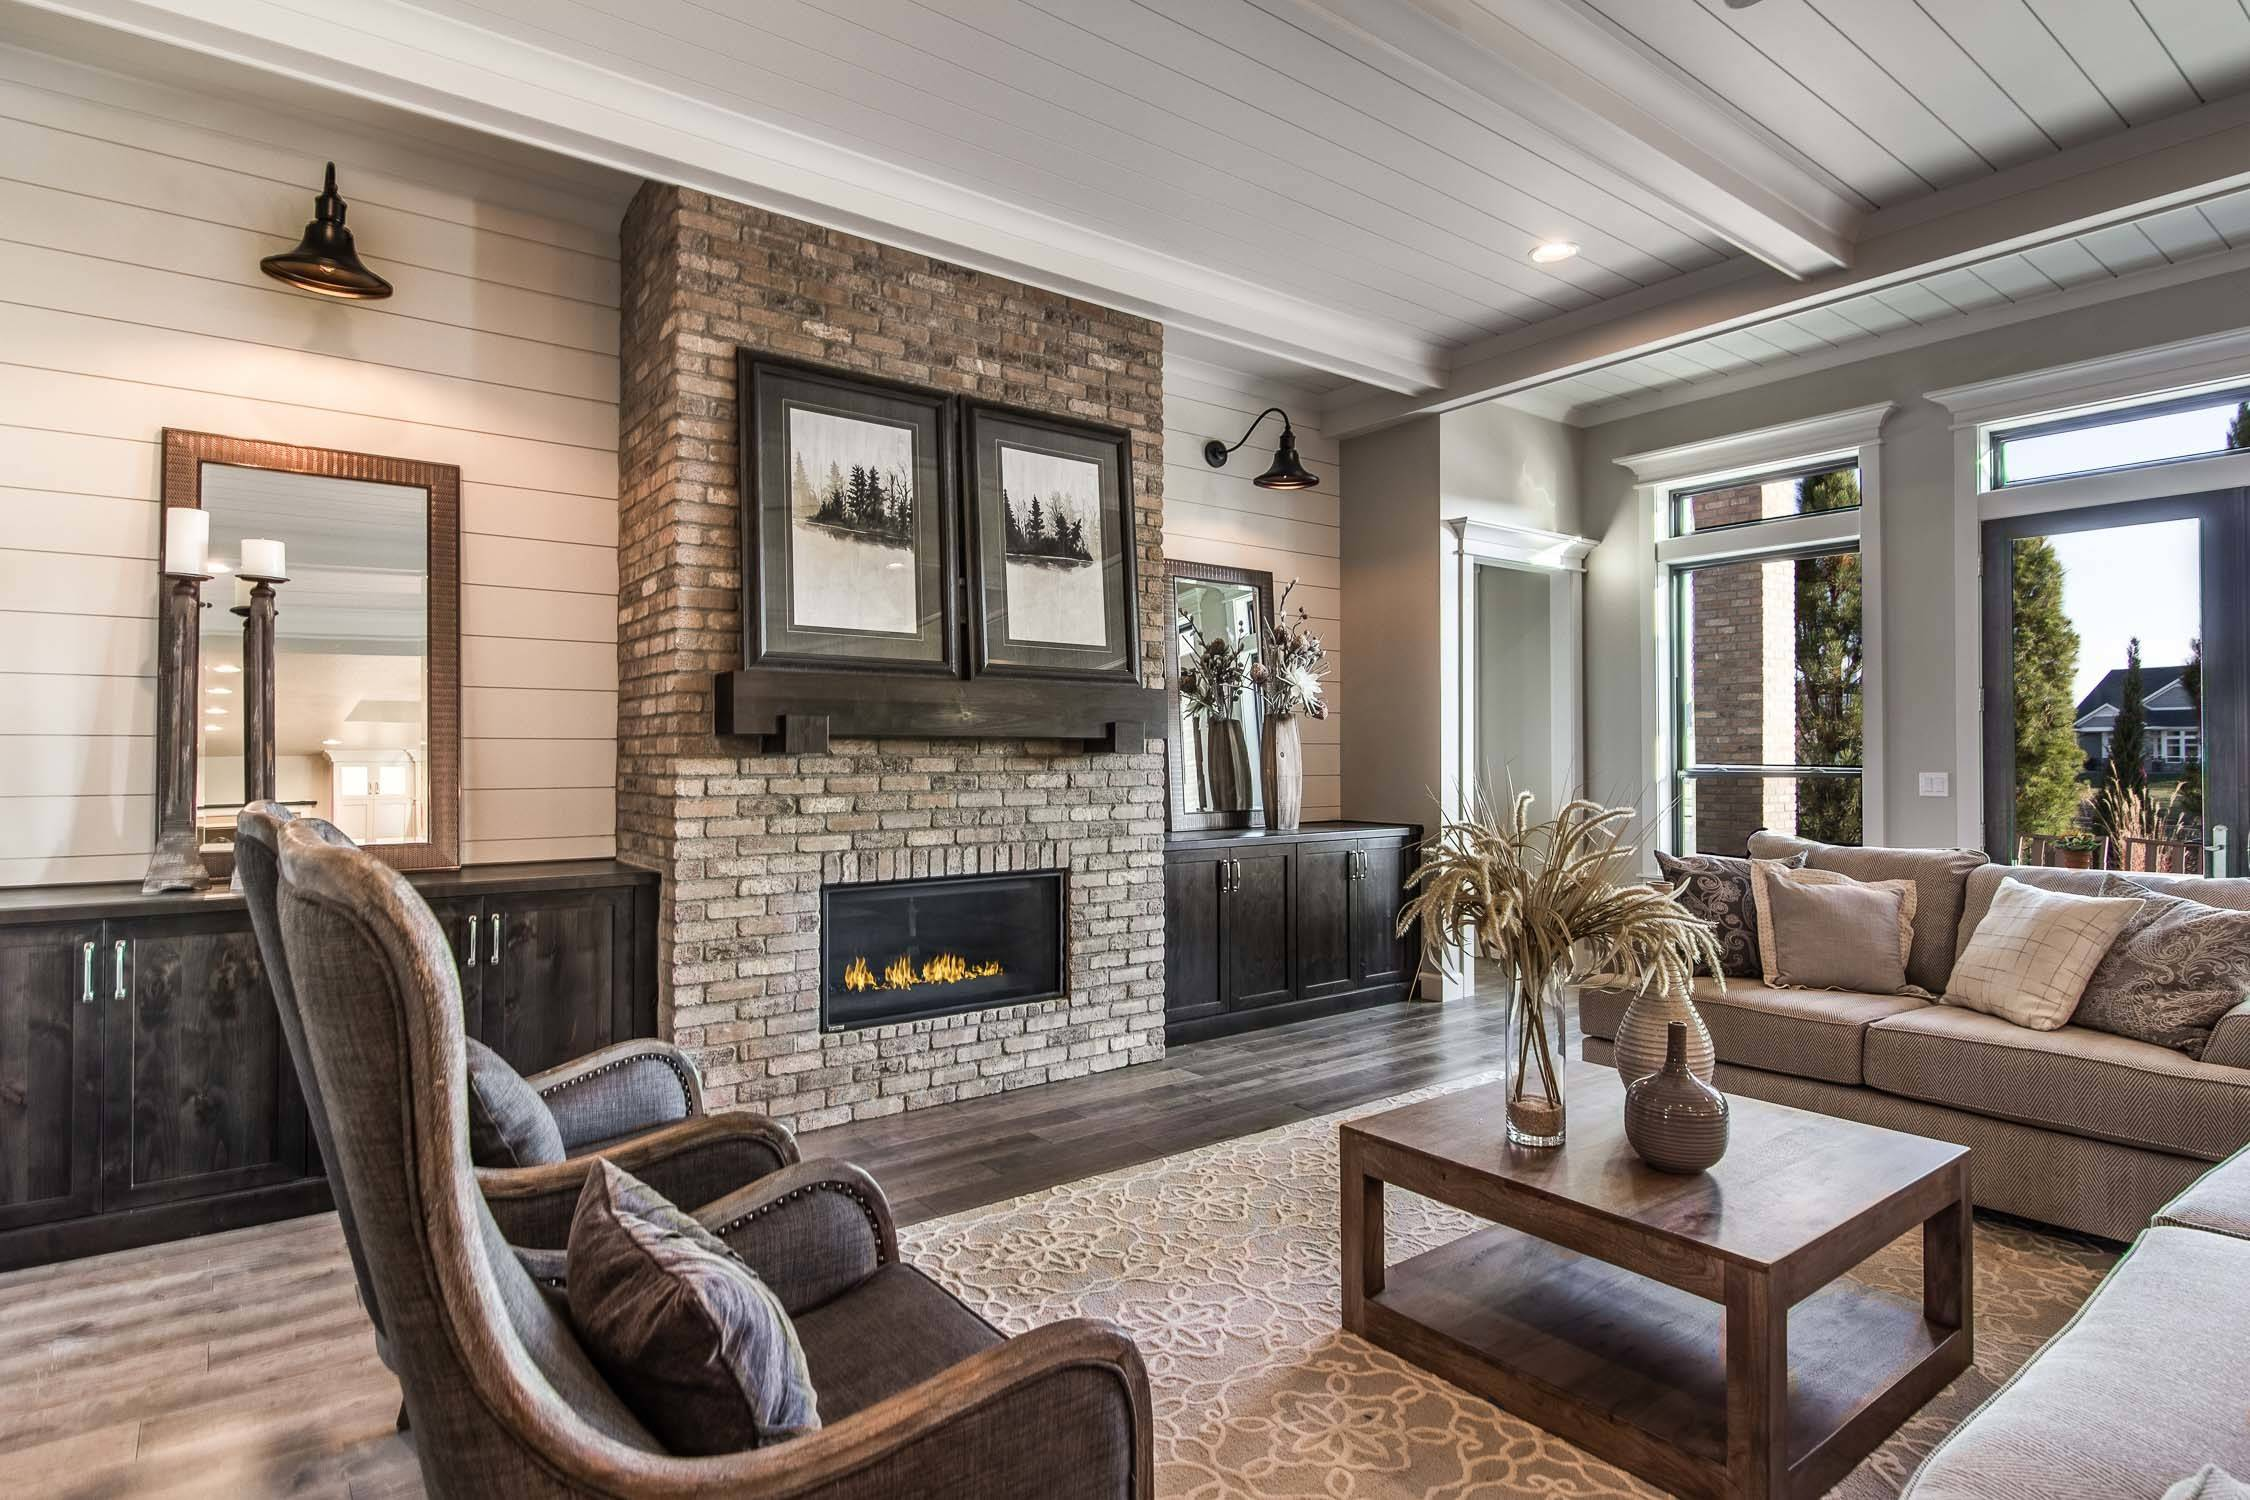 75 Beautiful Farmhouse Living Room With A Brick Fireplace Pictures Ideas February 2021 Houzz